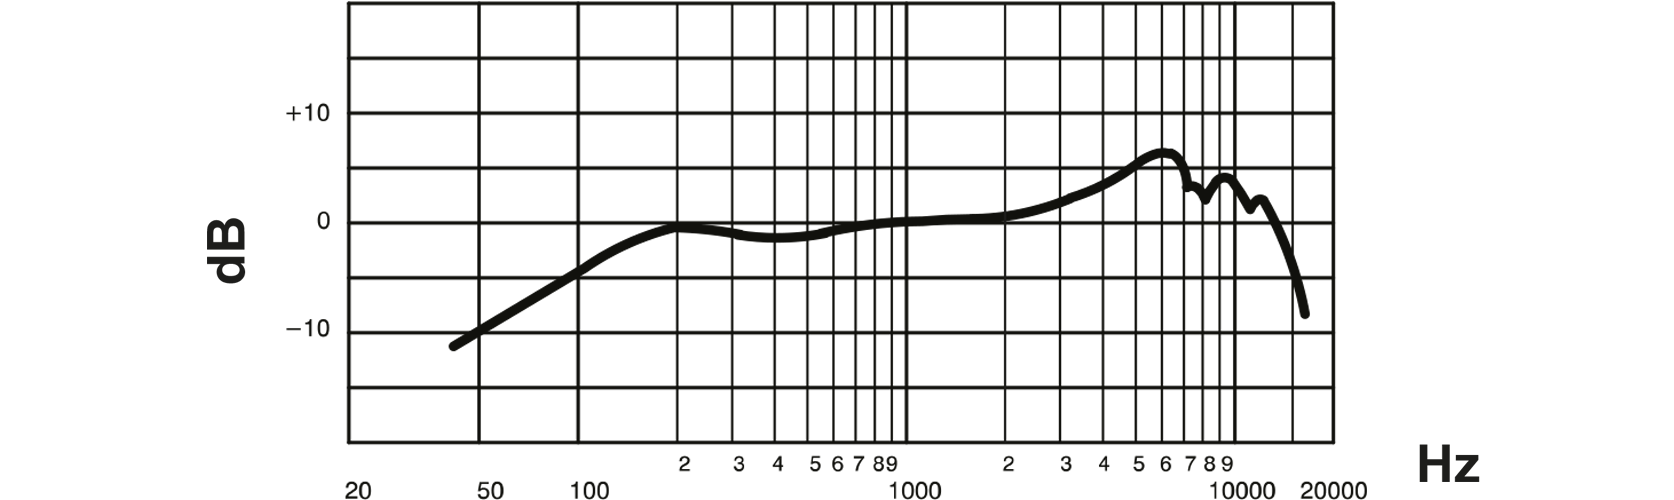 Shure Dynamic Instrument Microphone                    Frequency Response Curve Image